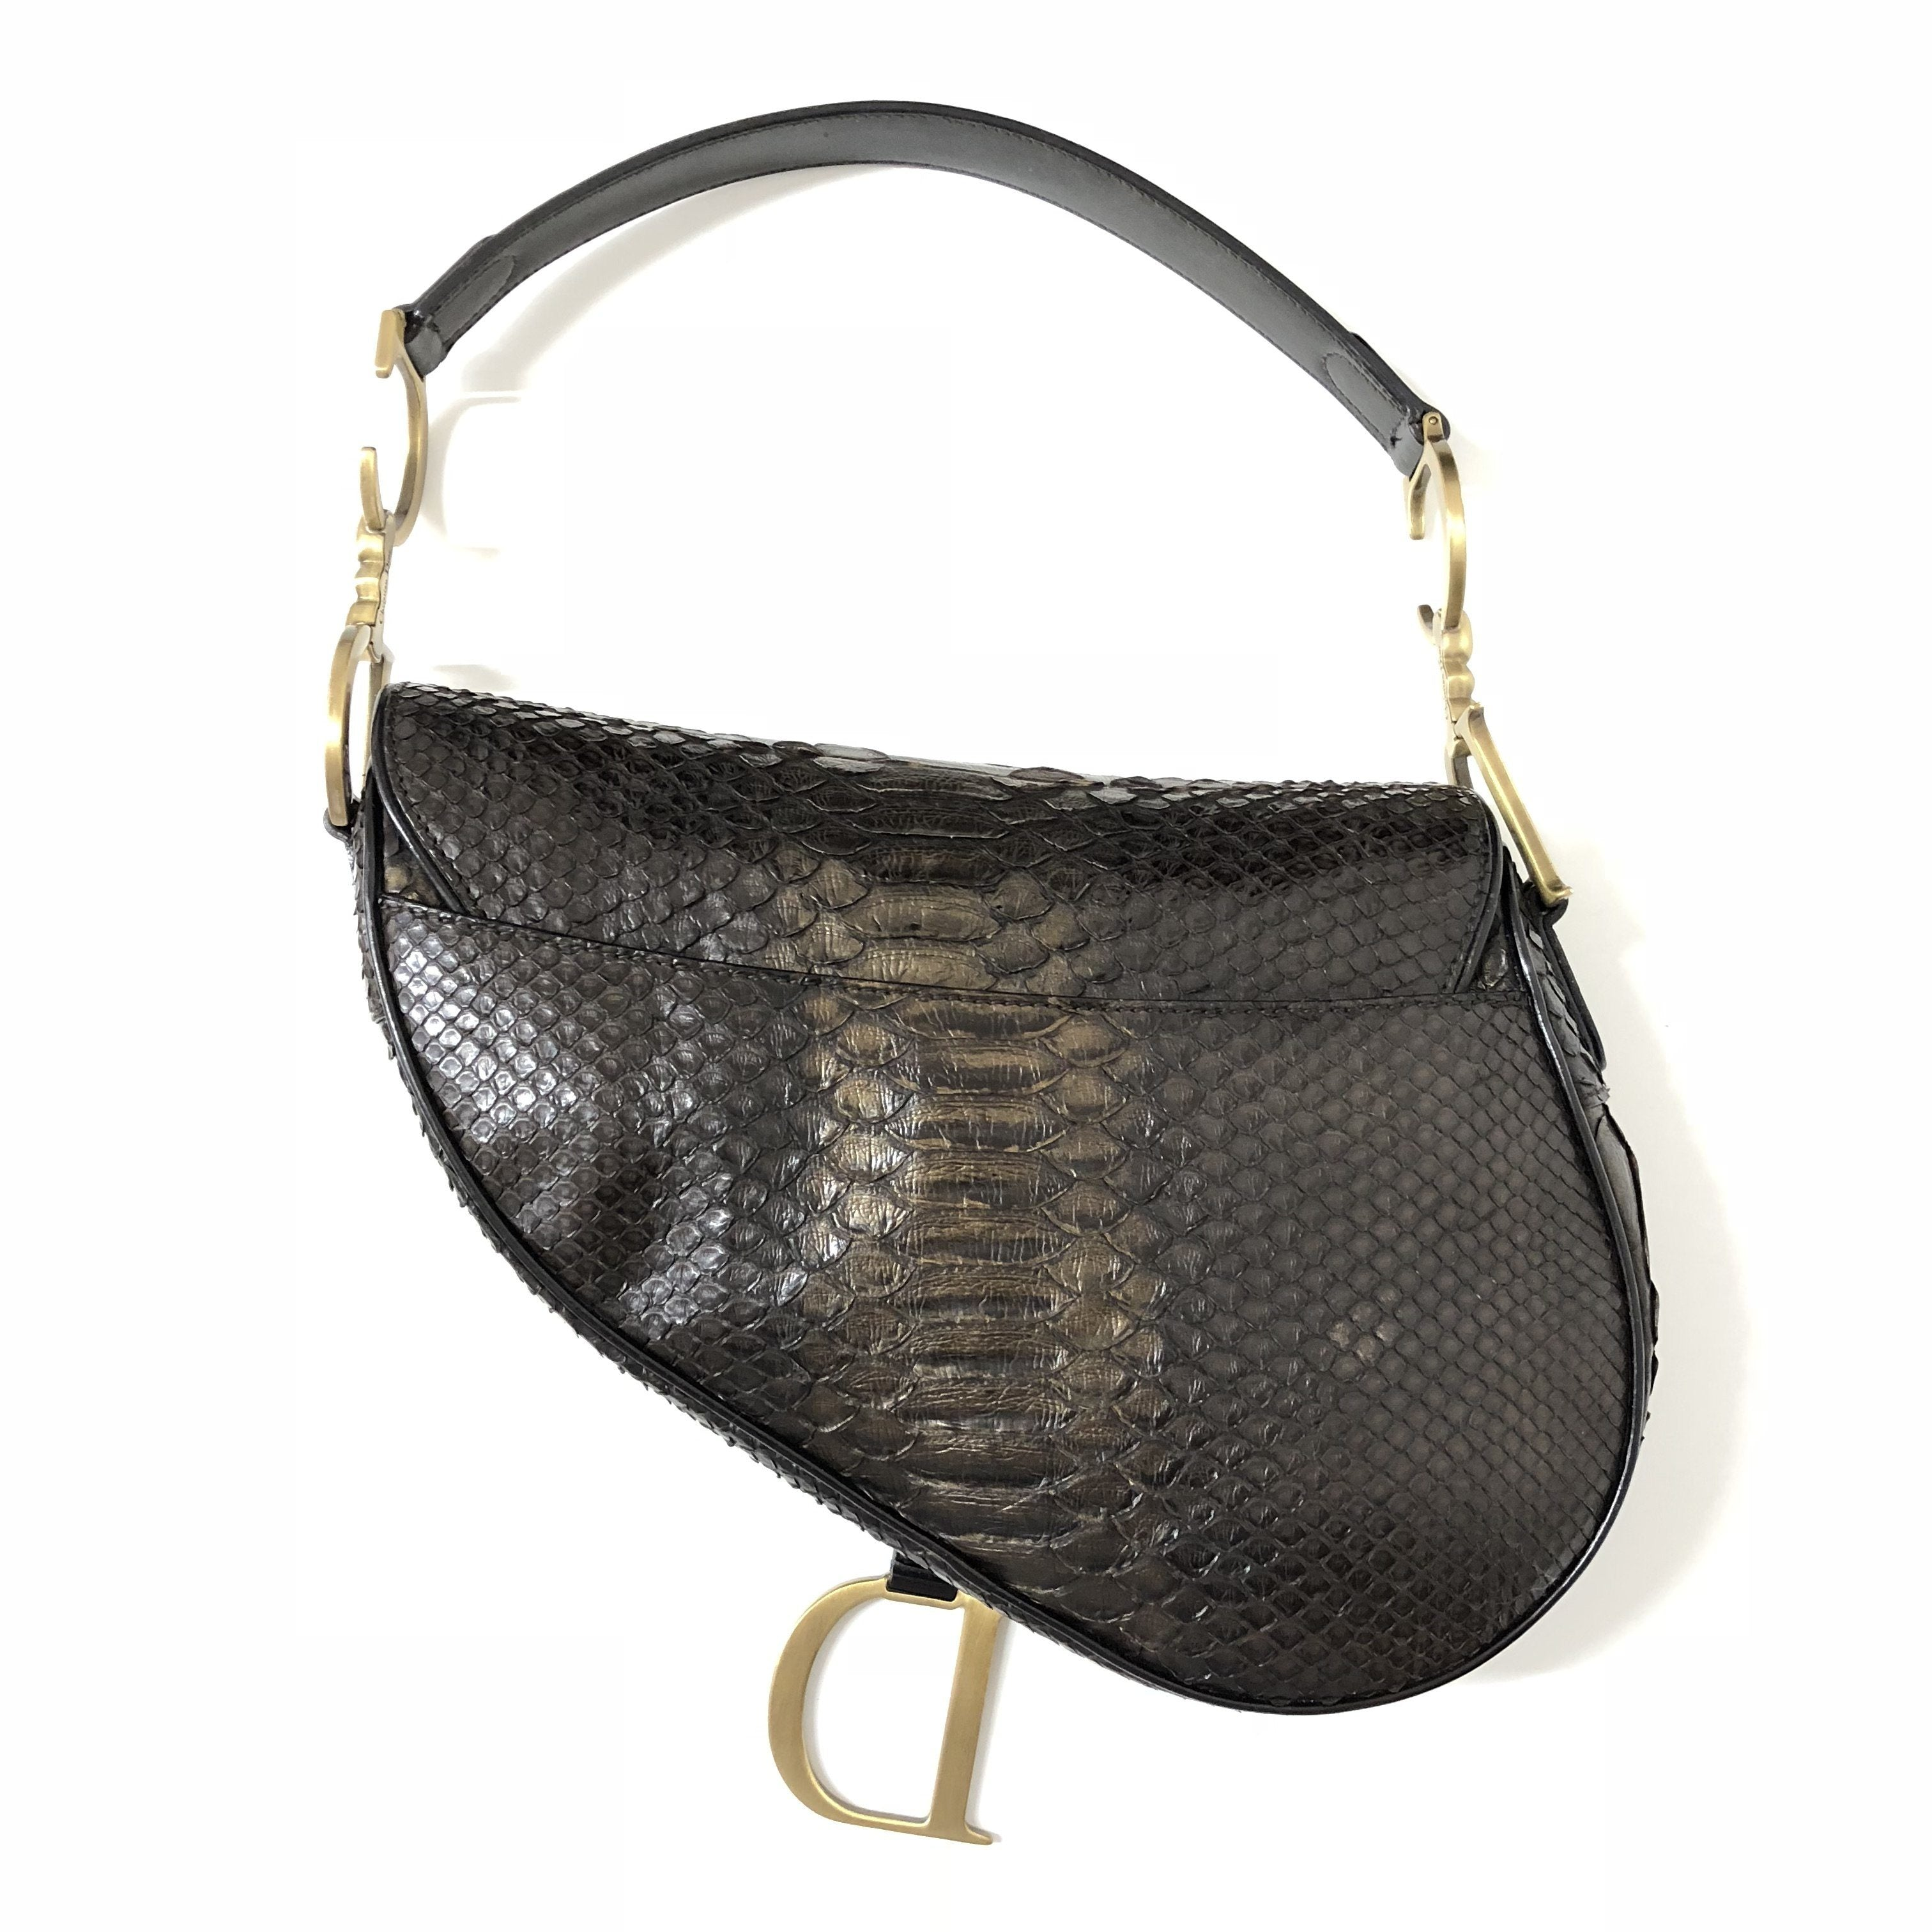 Christian Dior Python Saddle GHW Bag